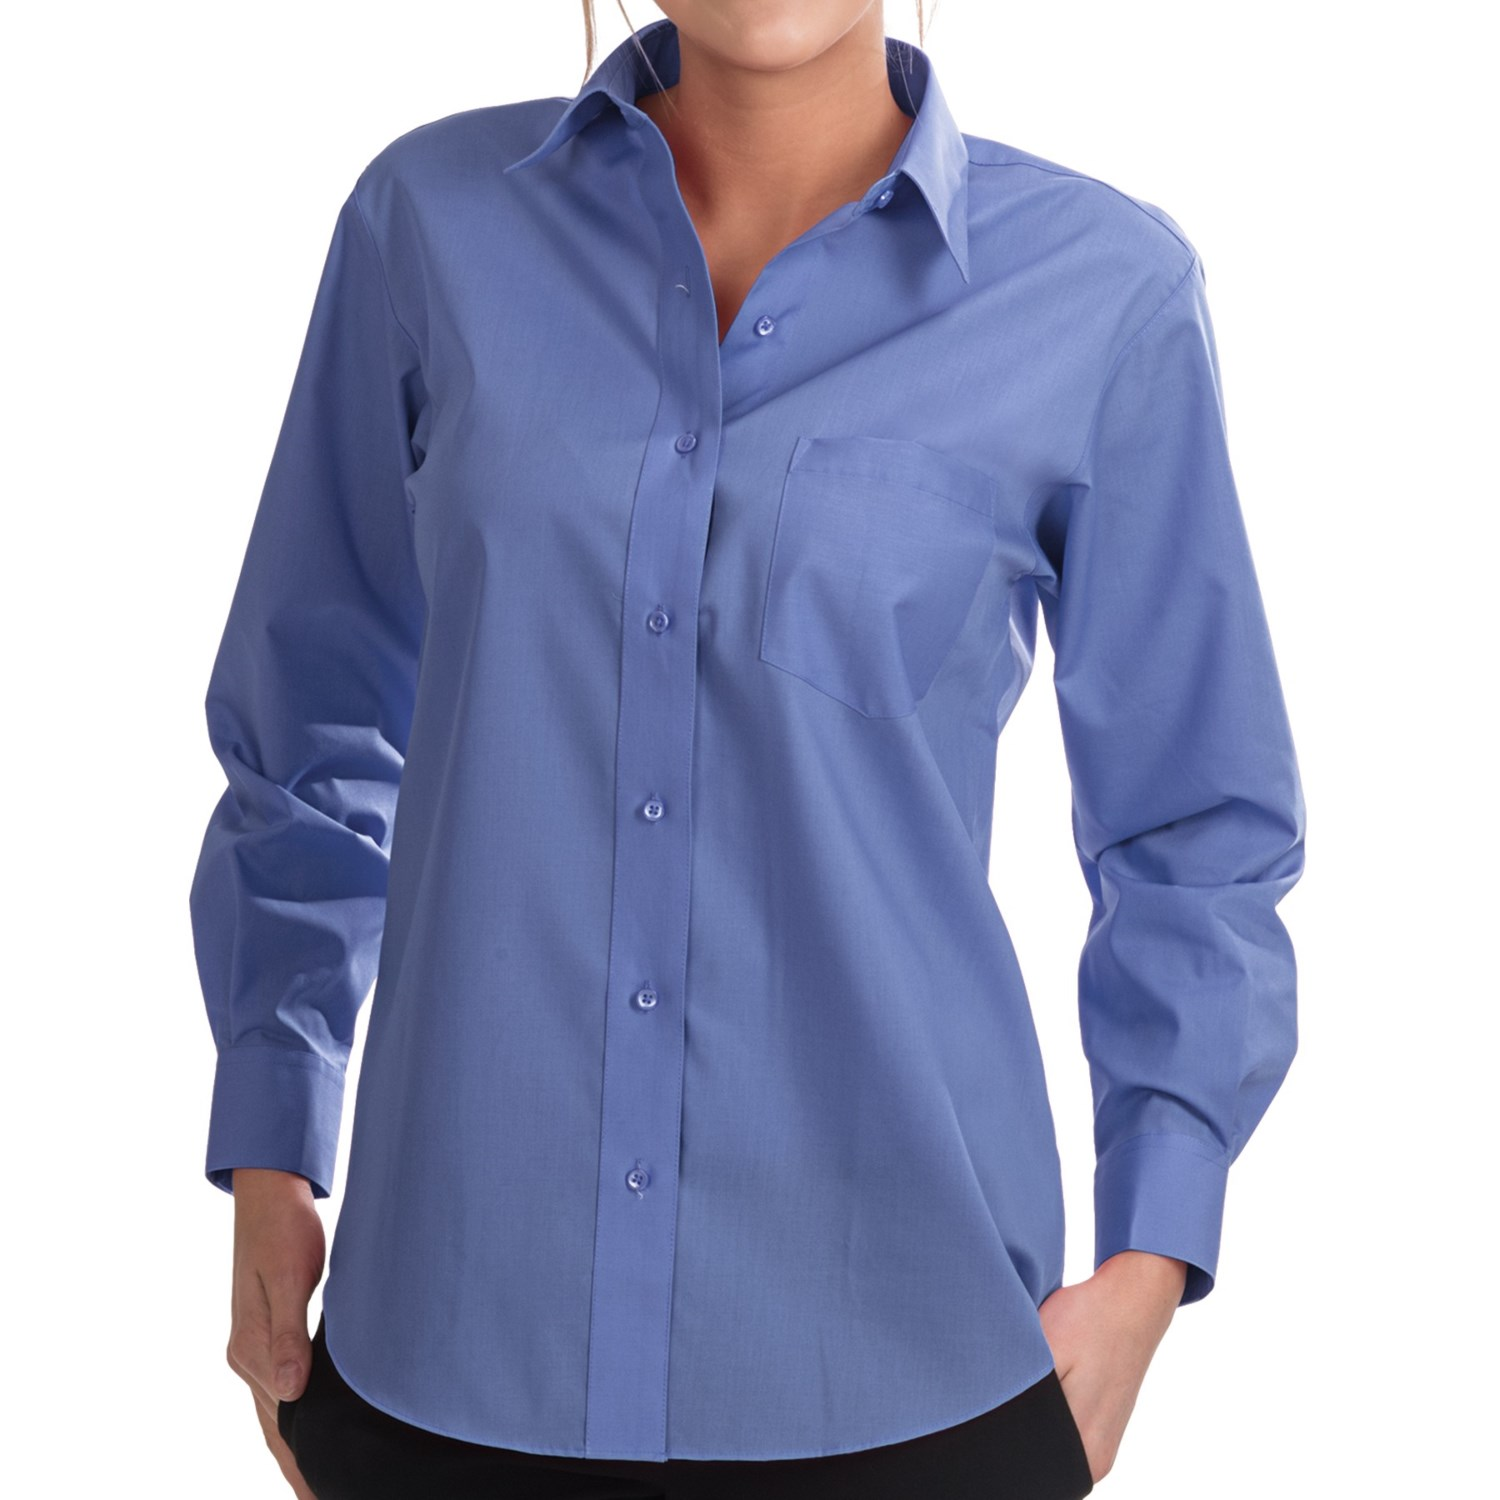 Foxcroft wrinkle free essentials shirt for women 6630a Wrinkle free shirts for women